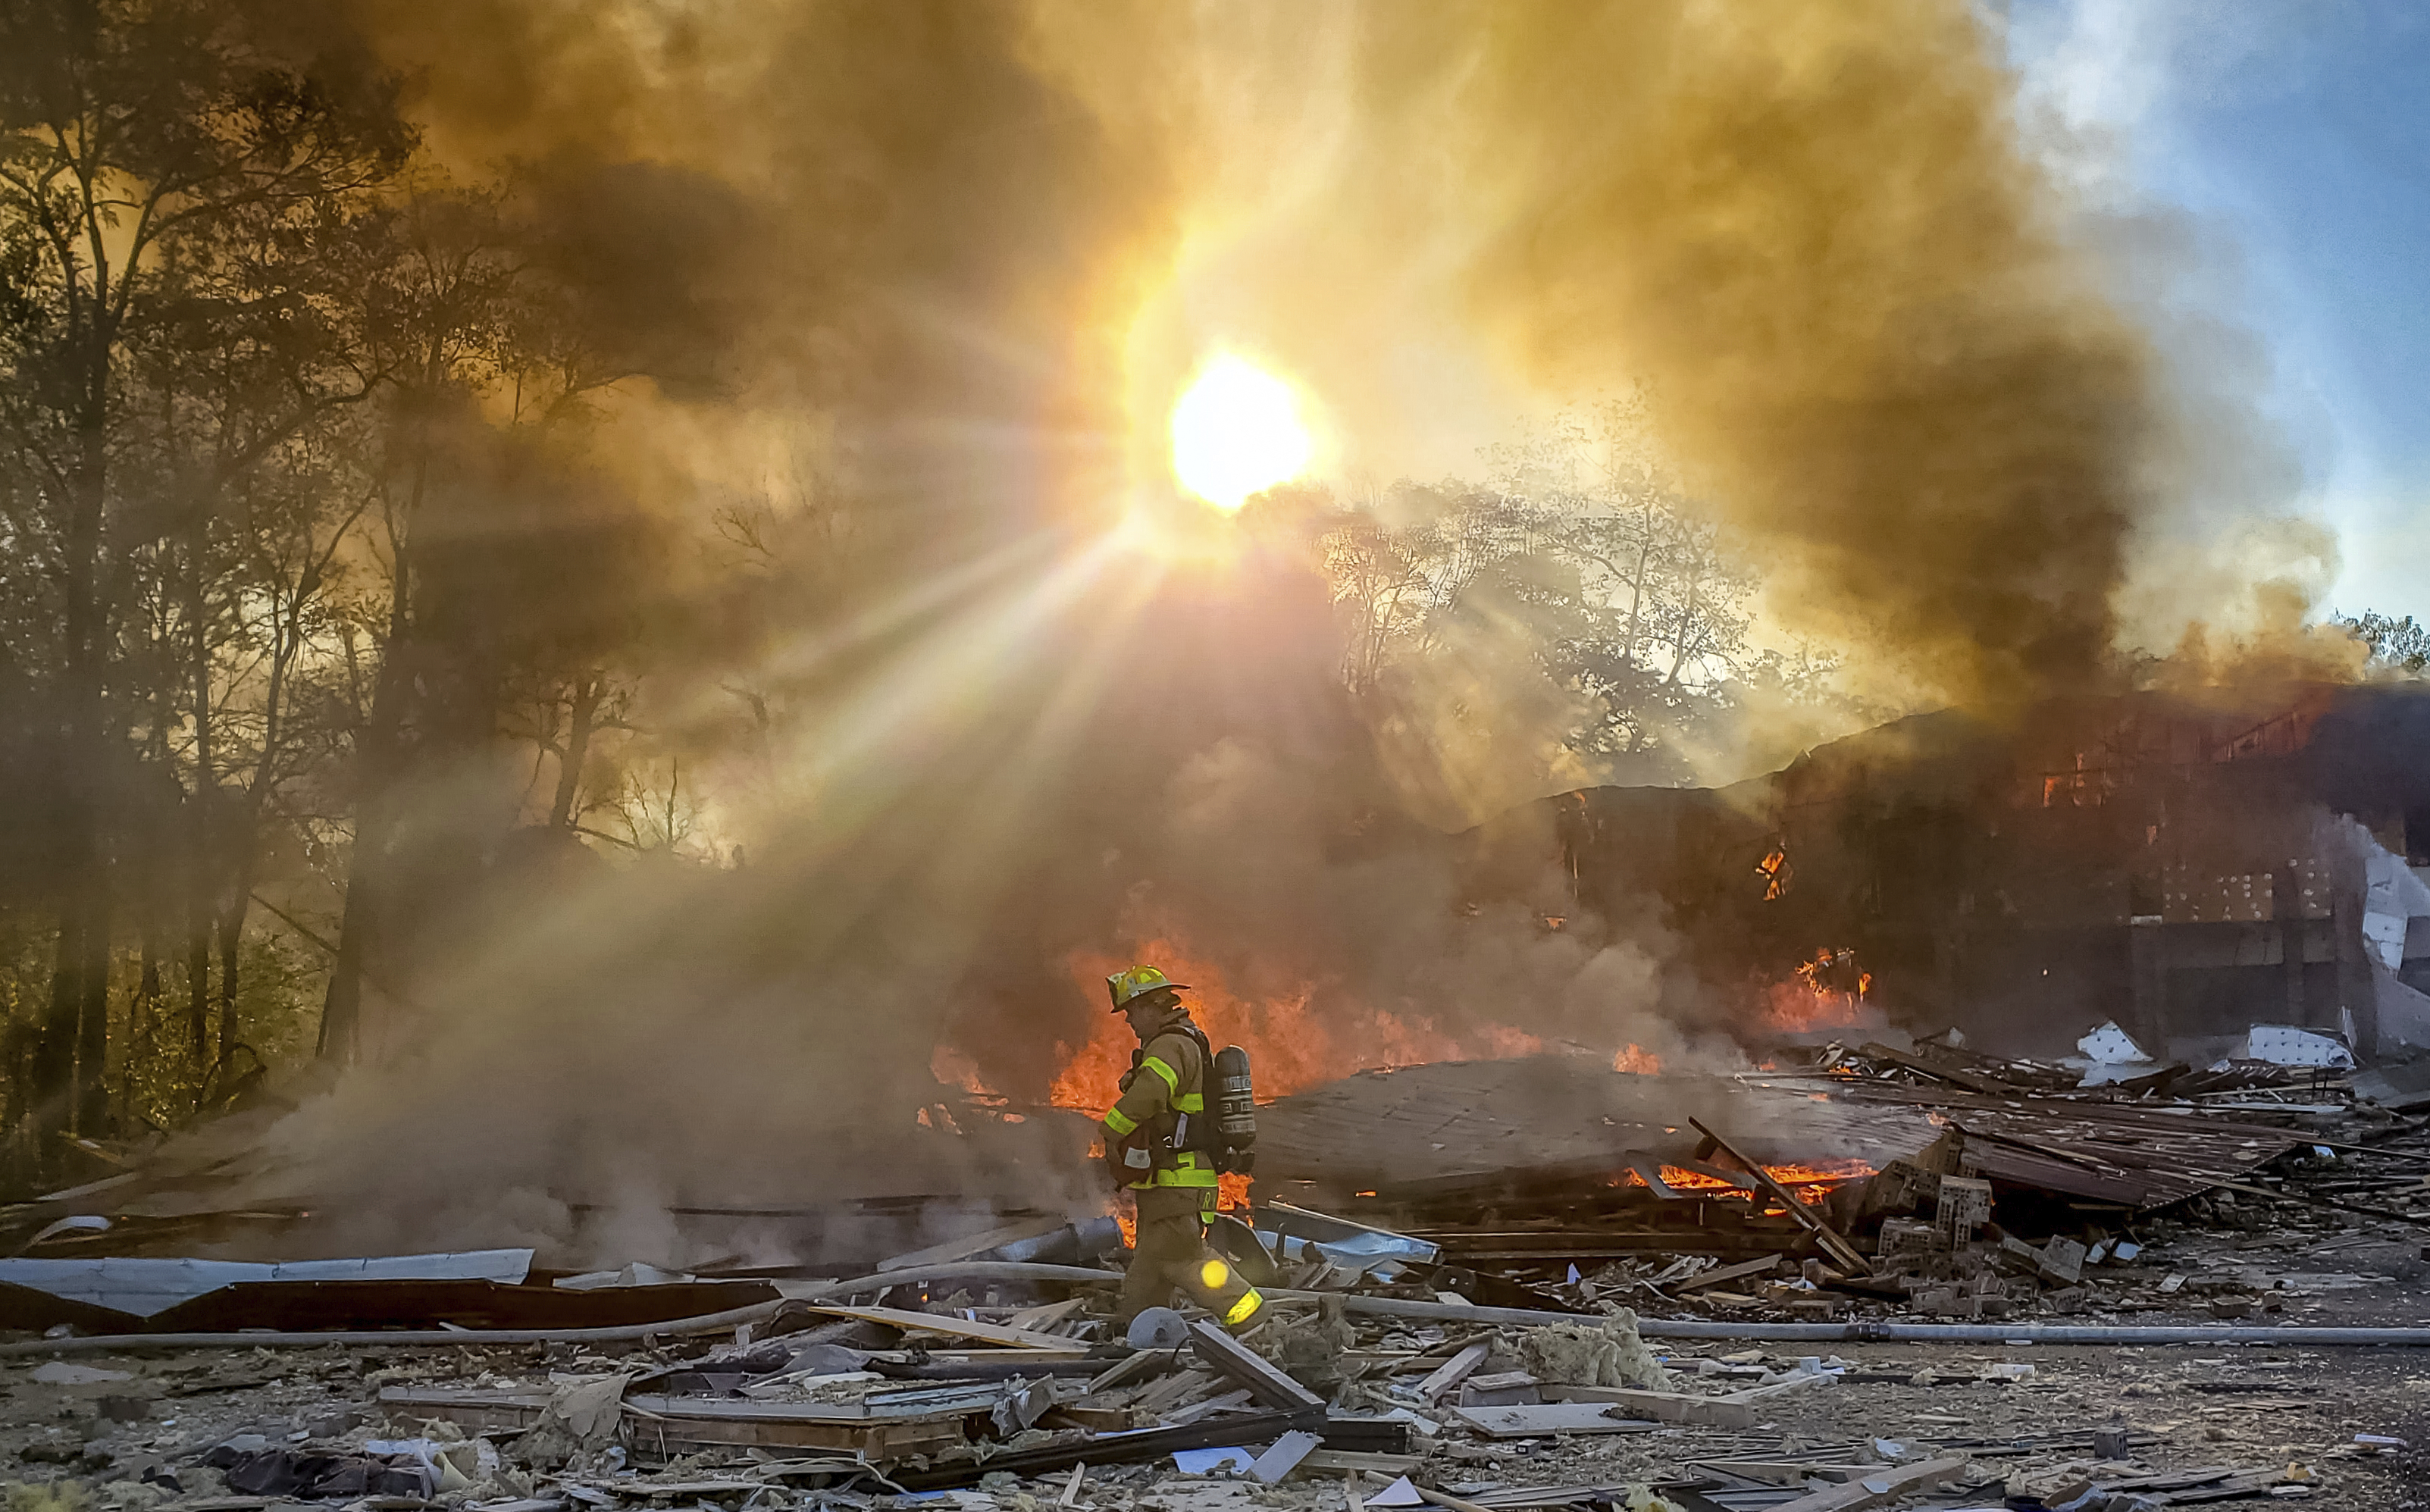 A firefighter walks through the burning rubble of a shopping center after an explosion in Harrisonburg, Va., on Oct. 17, 2020.